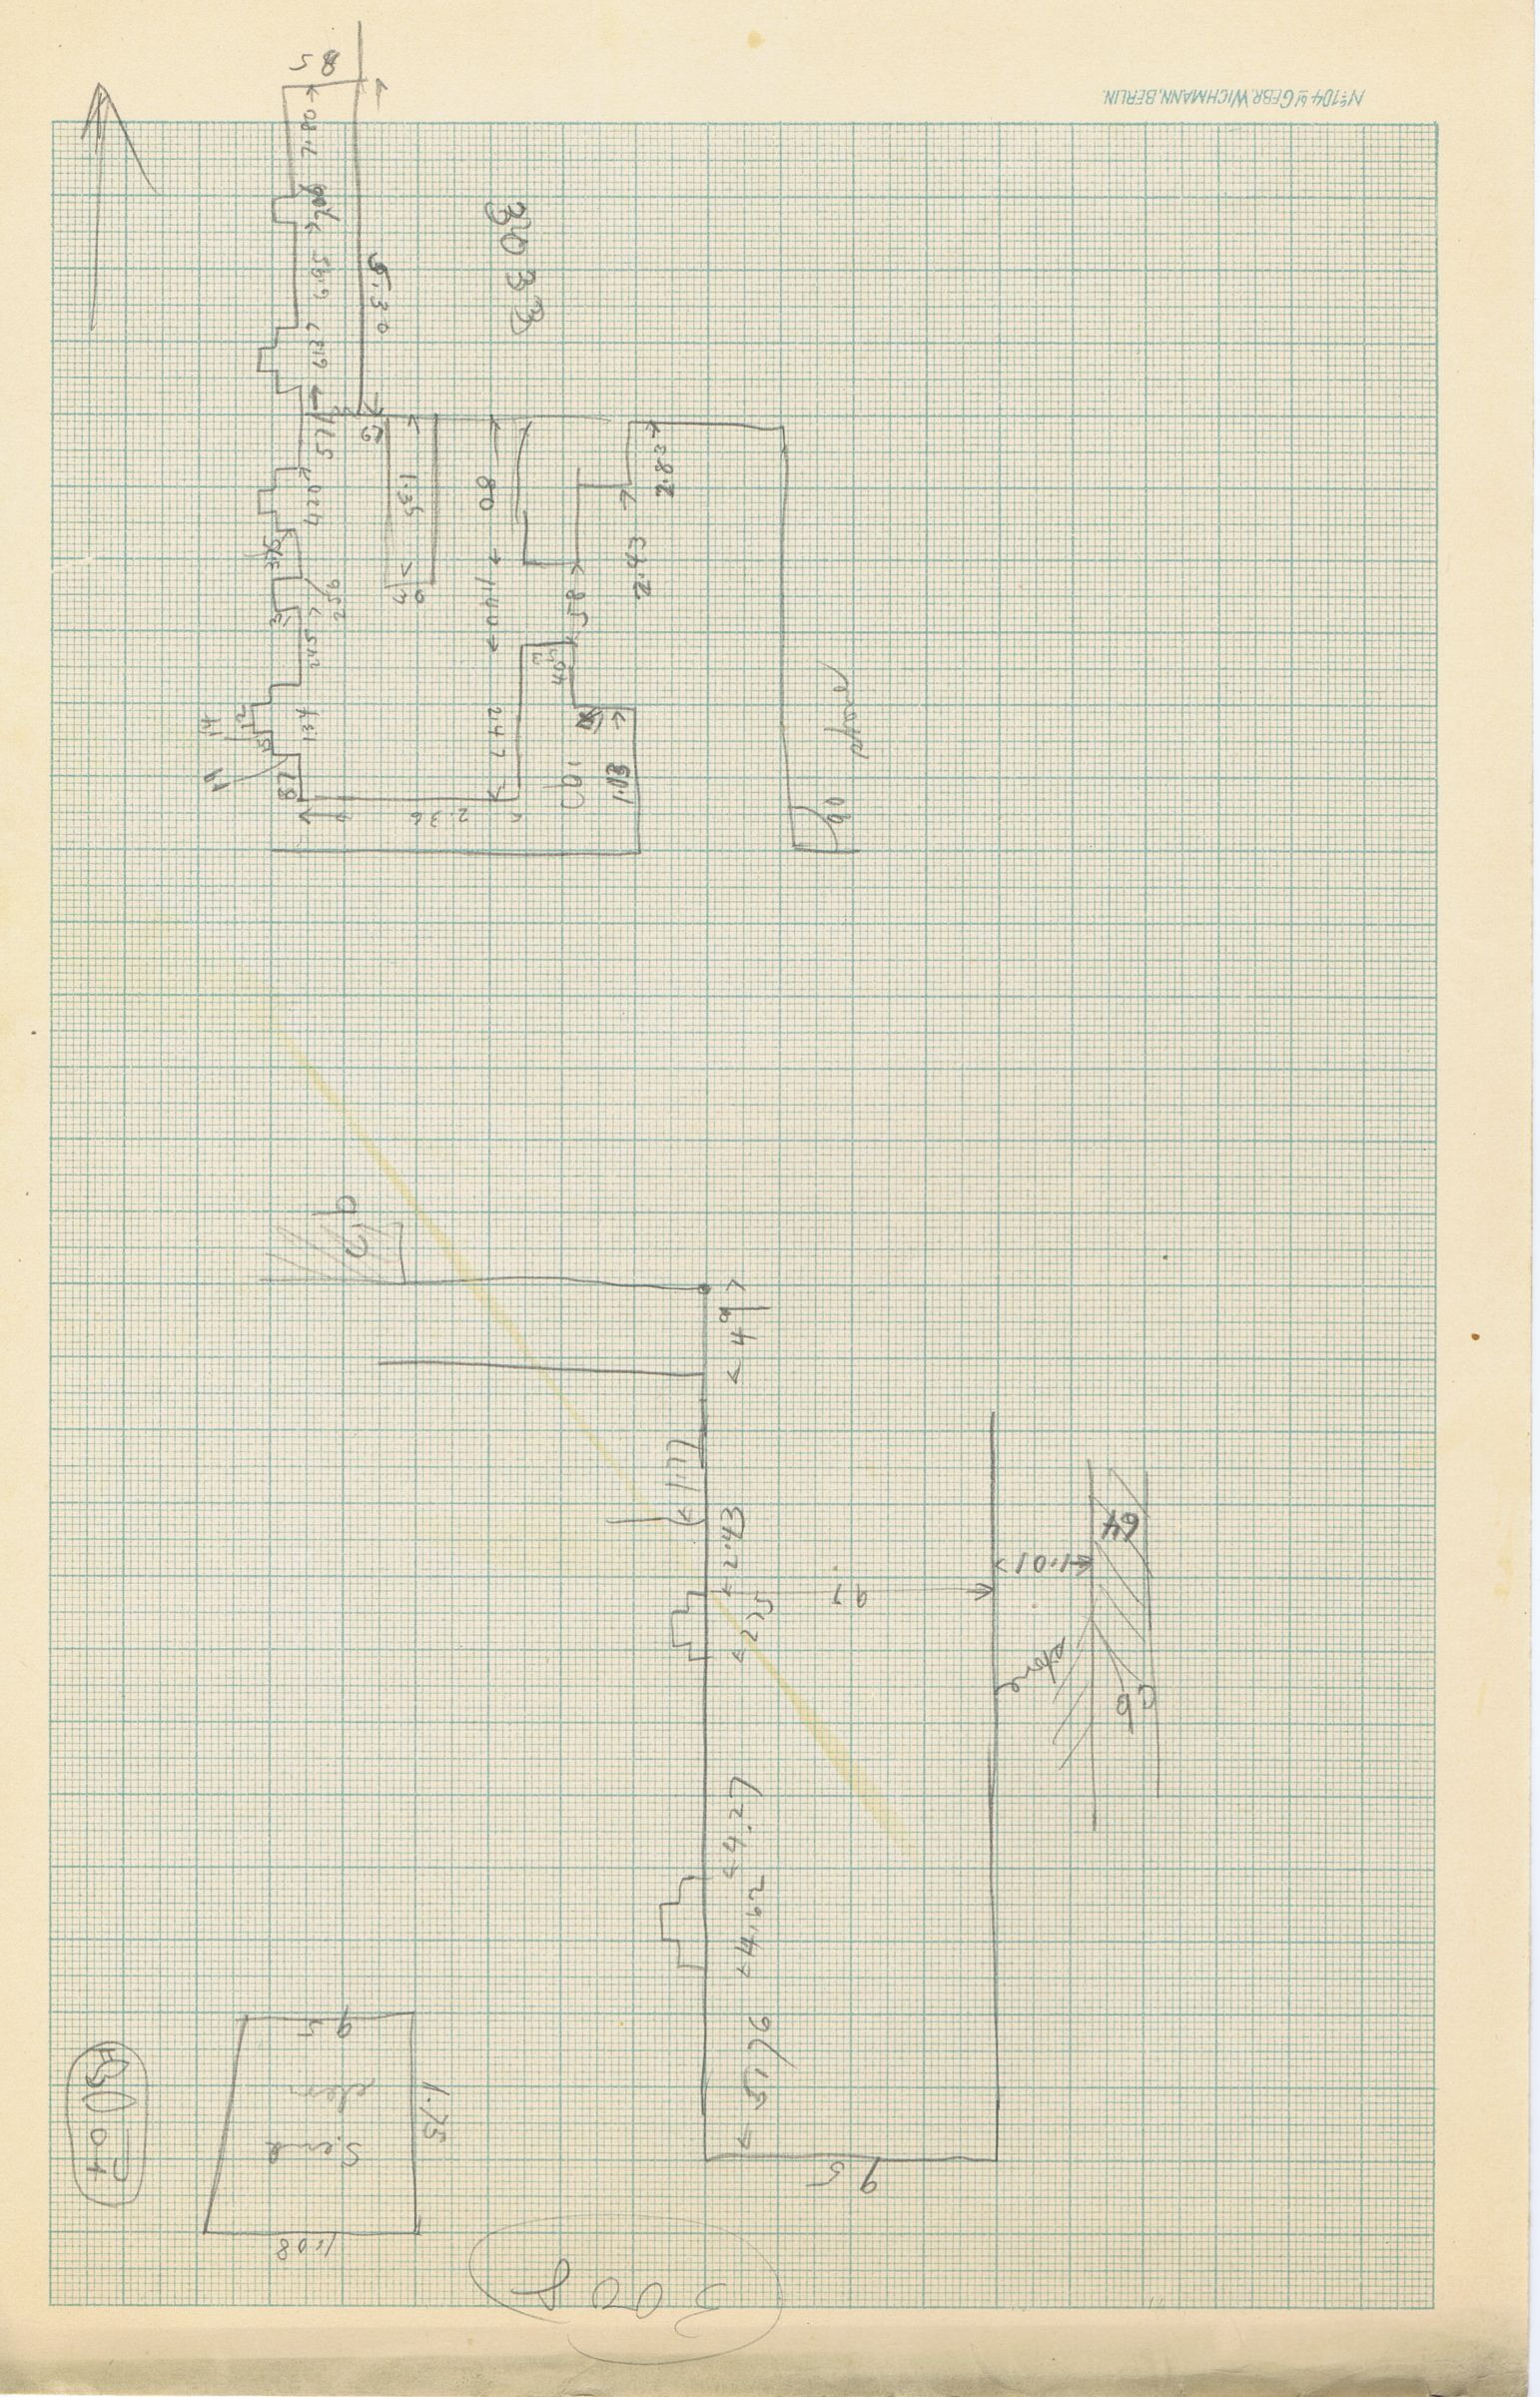 Maps and plans: Sketch plans of G 3008, G 3033